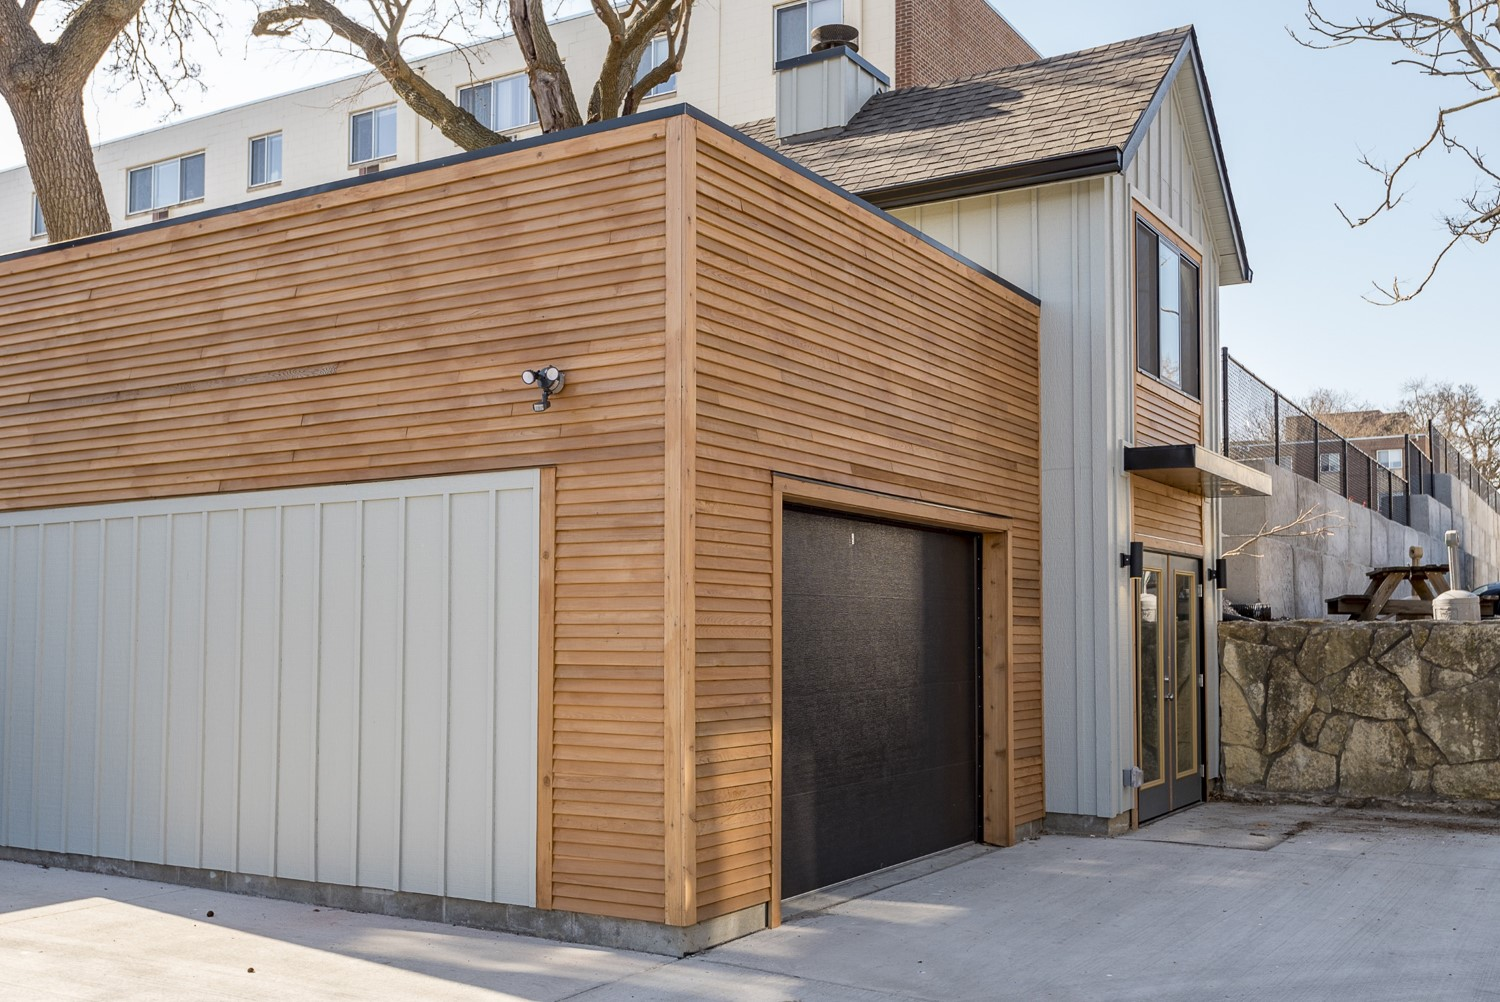 Carriage House - Address + Type of Project